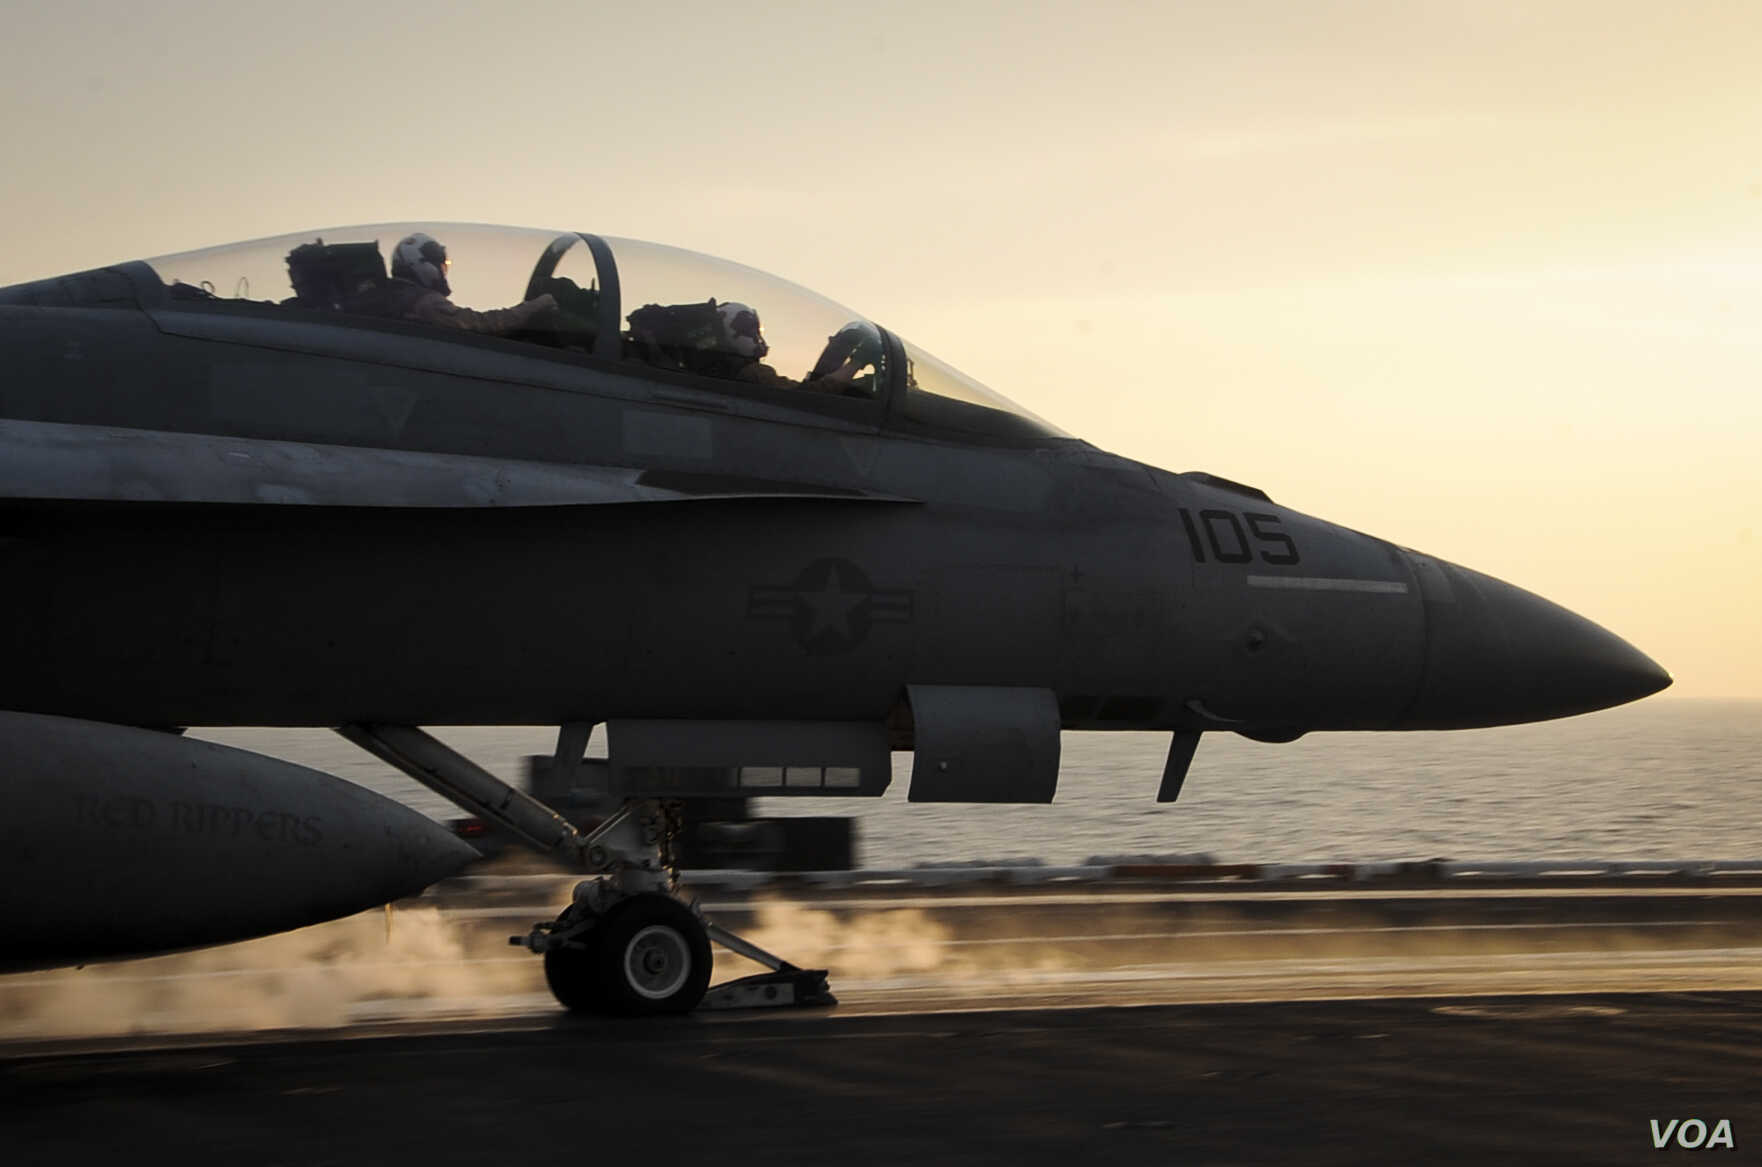 An F/A-18F Super Hornet launches from the flight deck of the aircraft carrier USS Theodore Roosevelt which is supporting strike operations in Iraq and Syria, on Oct. 10, 2015.